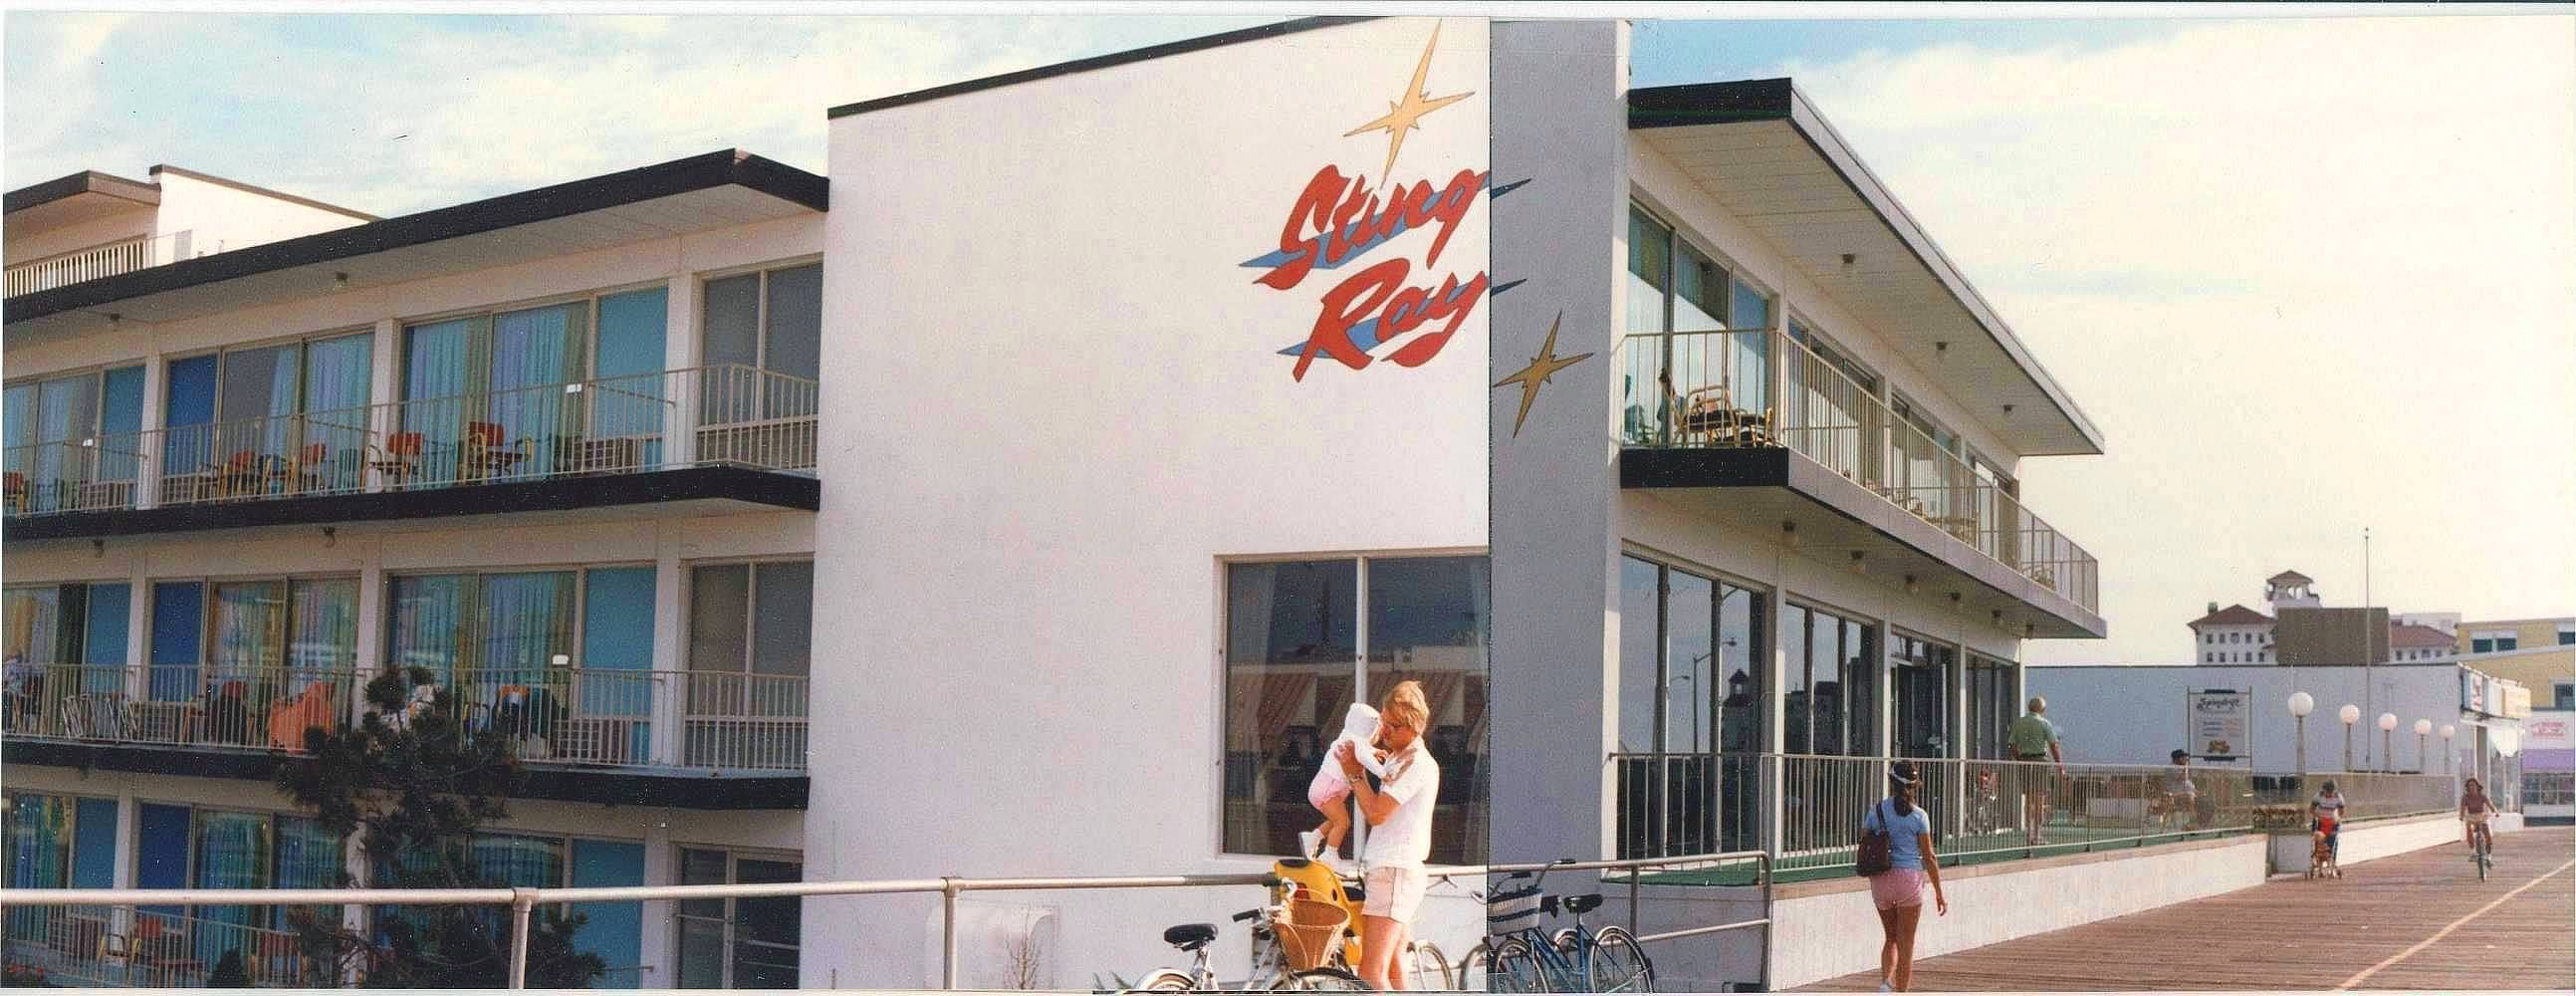 Sting Ray Motel Boardwalk Ocean City Nj Early 1980 S My Grandmother I Stayed Here In The Late 1970 S To Ocean City Nj Boardwalk Ocean City Nj Ocean City